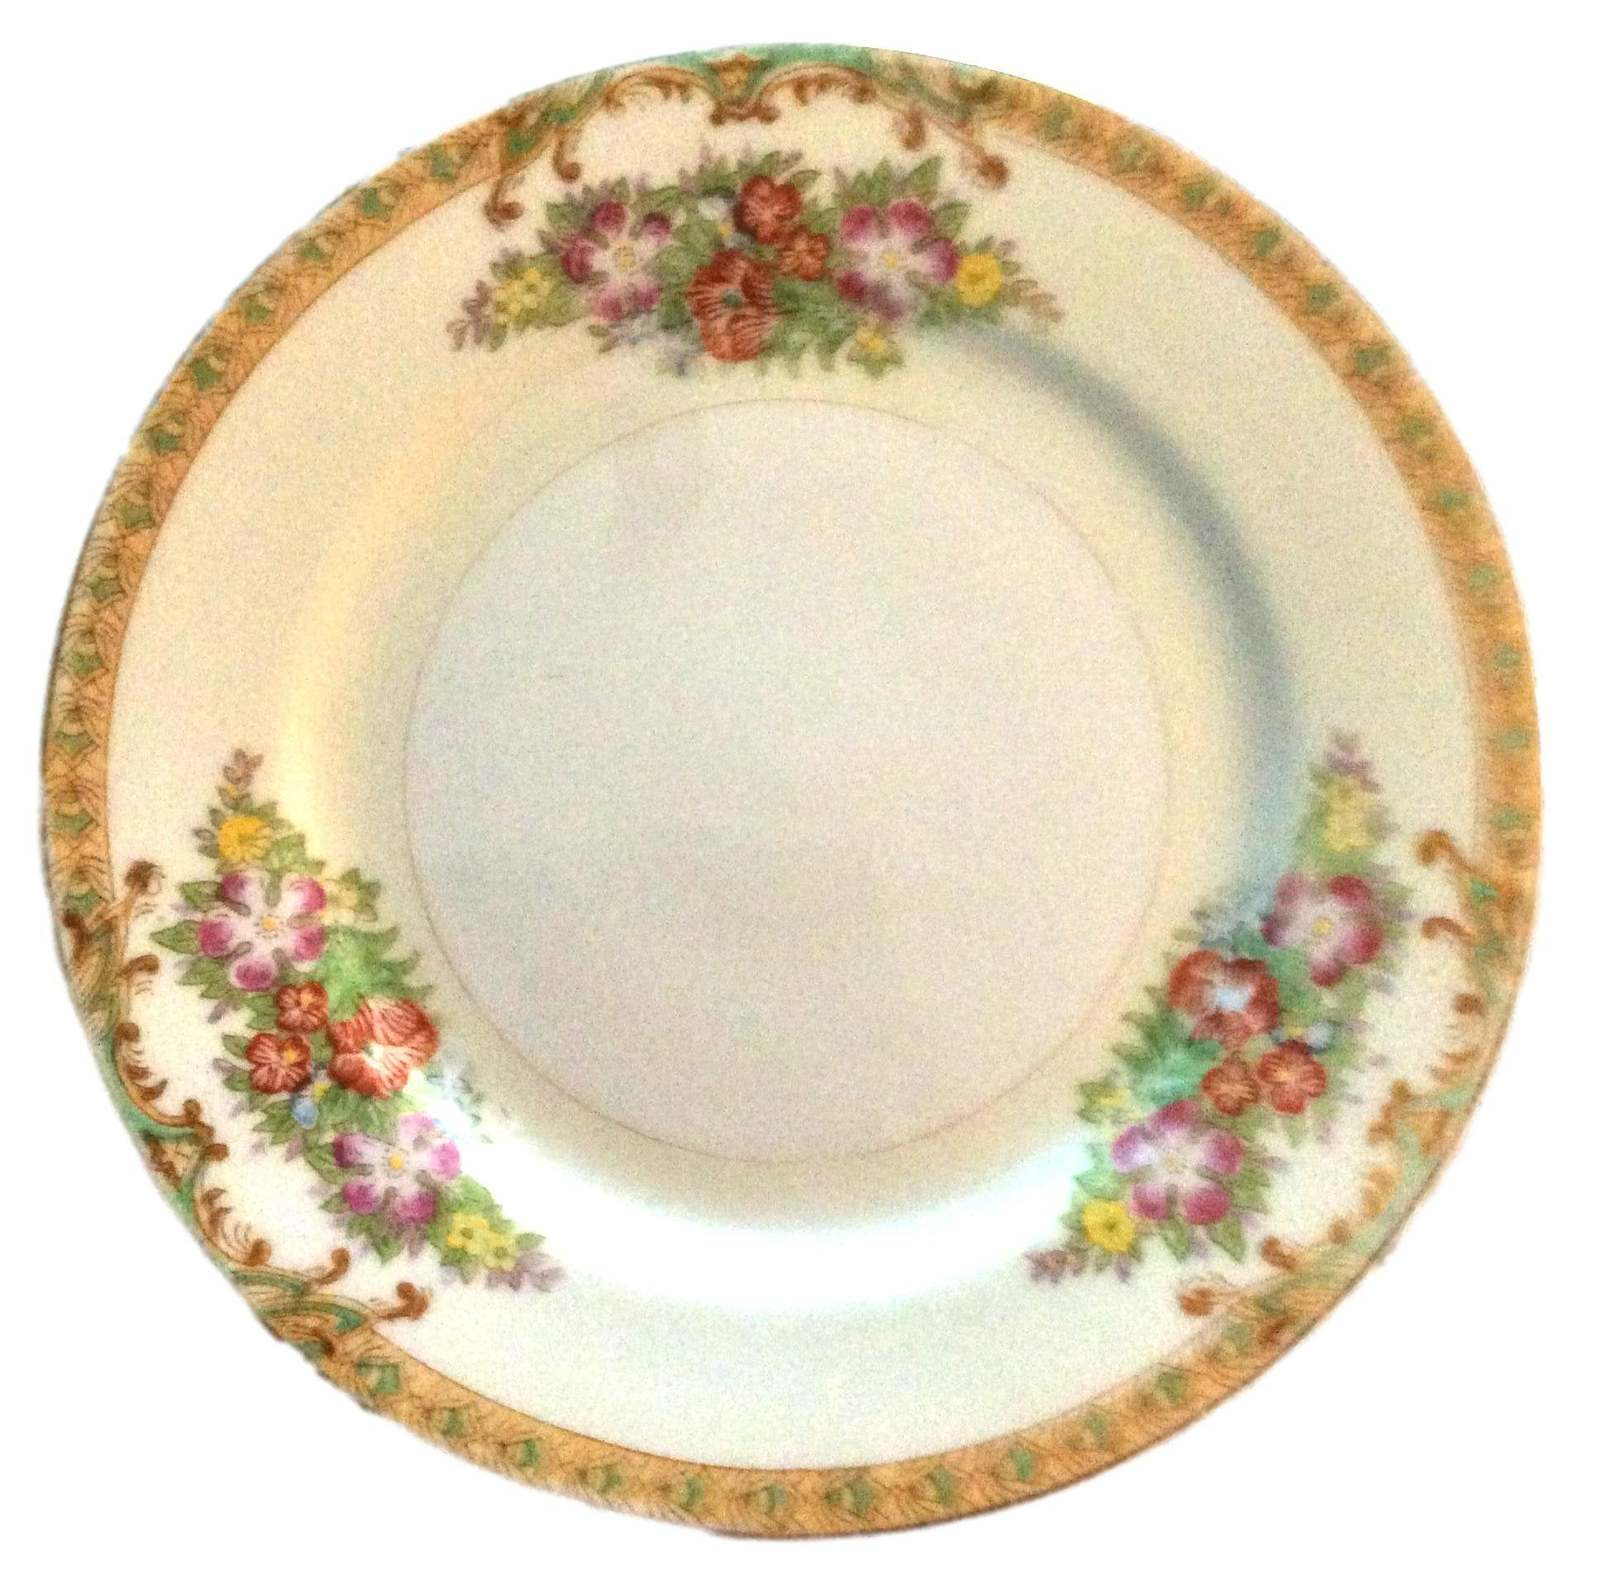 Primary image for Decorative Plate Vintage | Diamond China Plate | Salad Dish